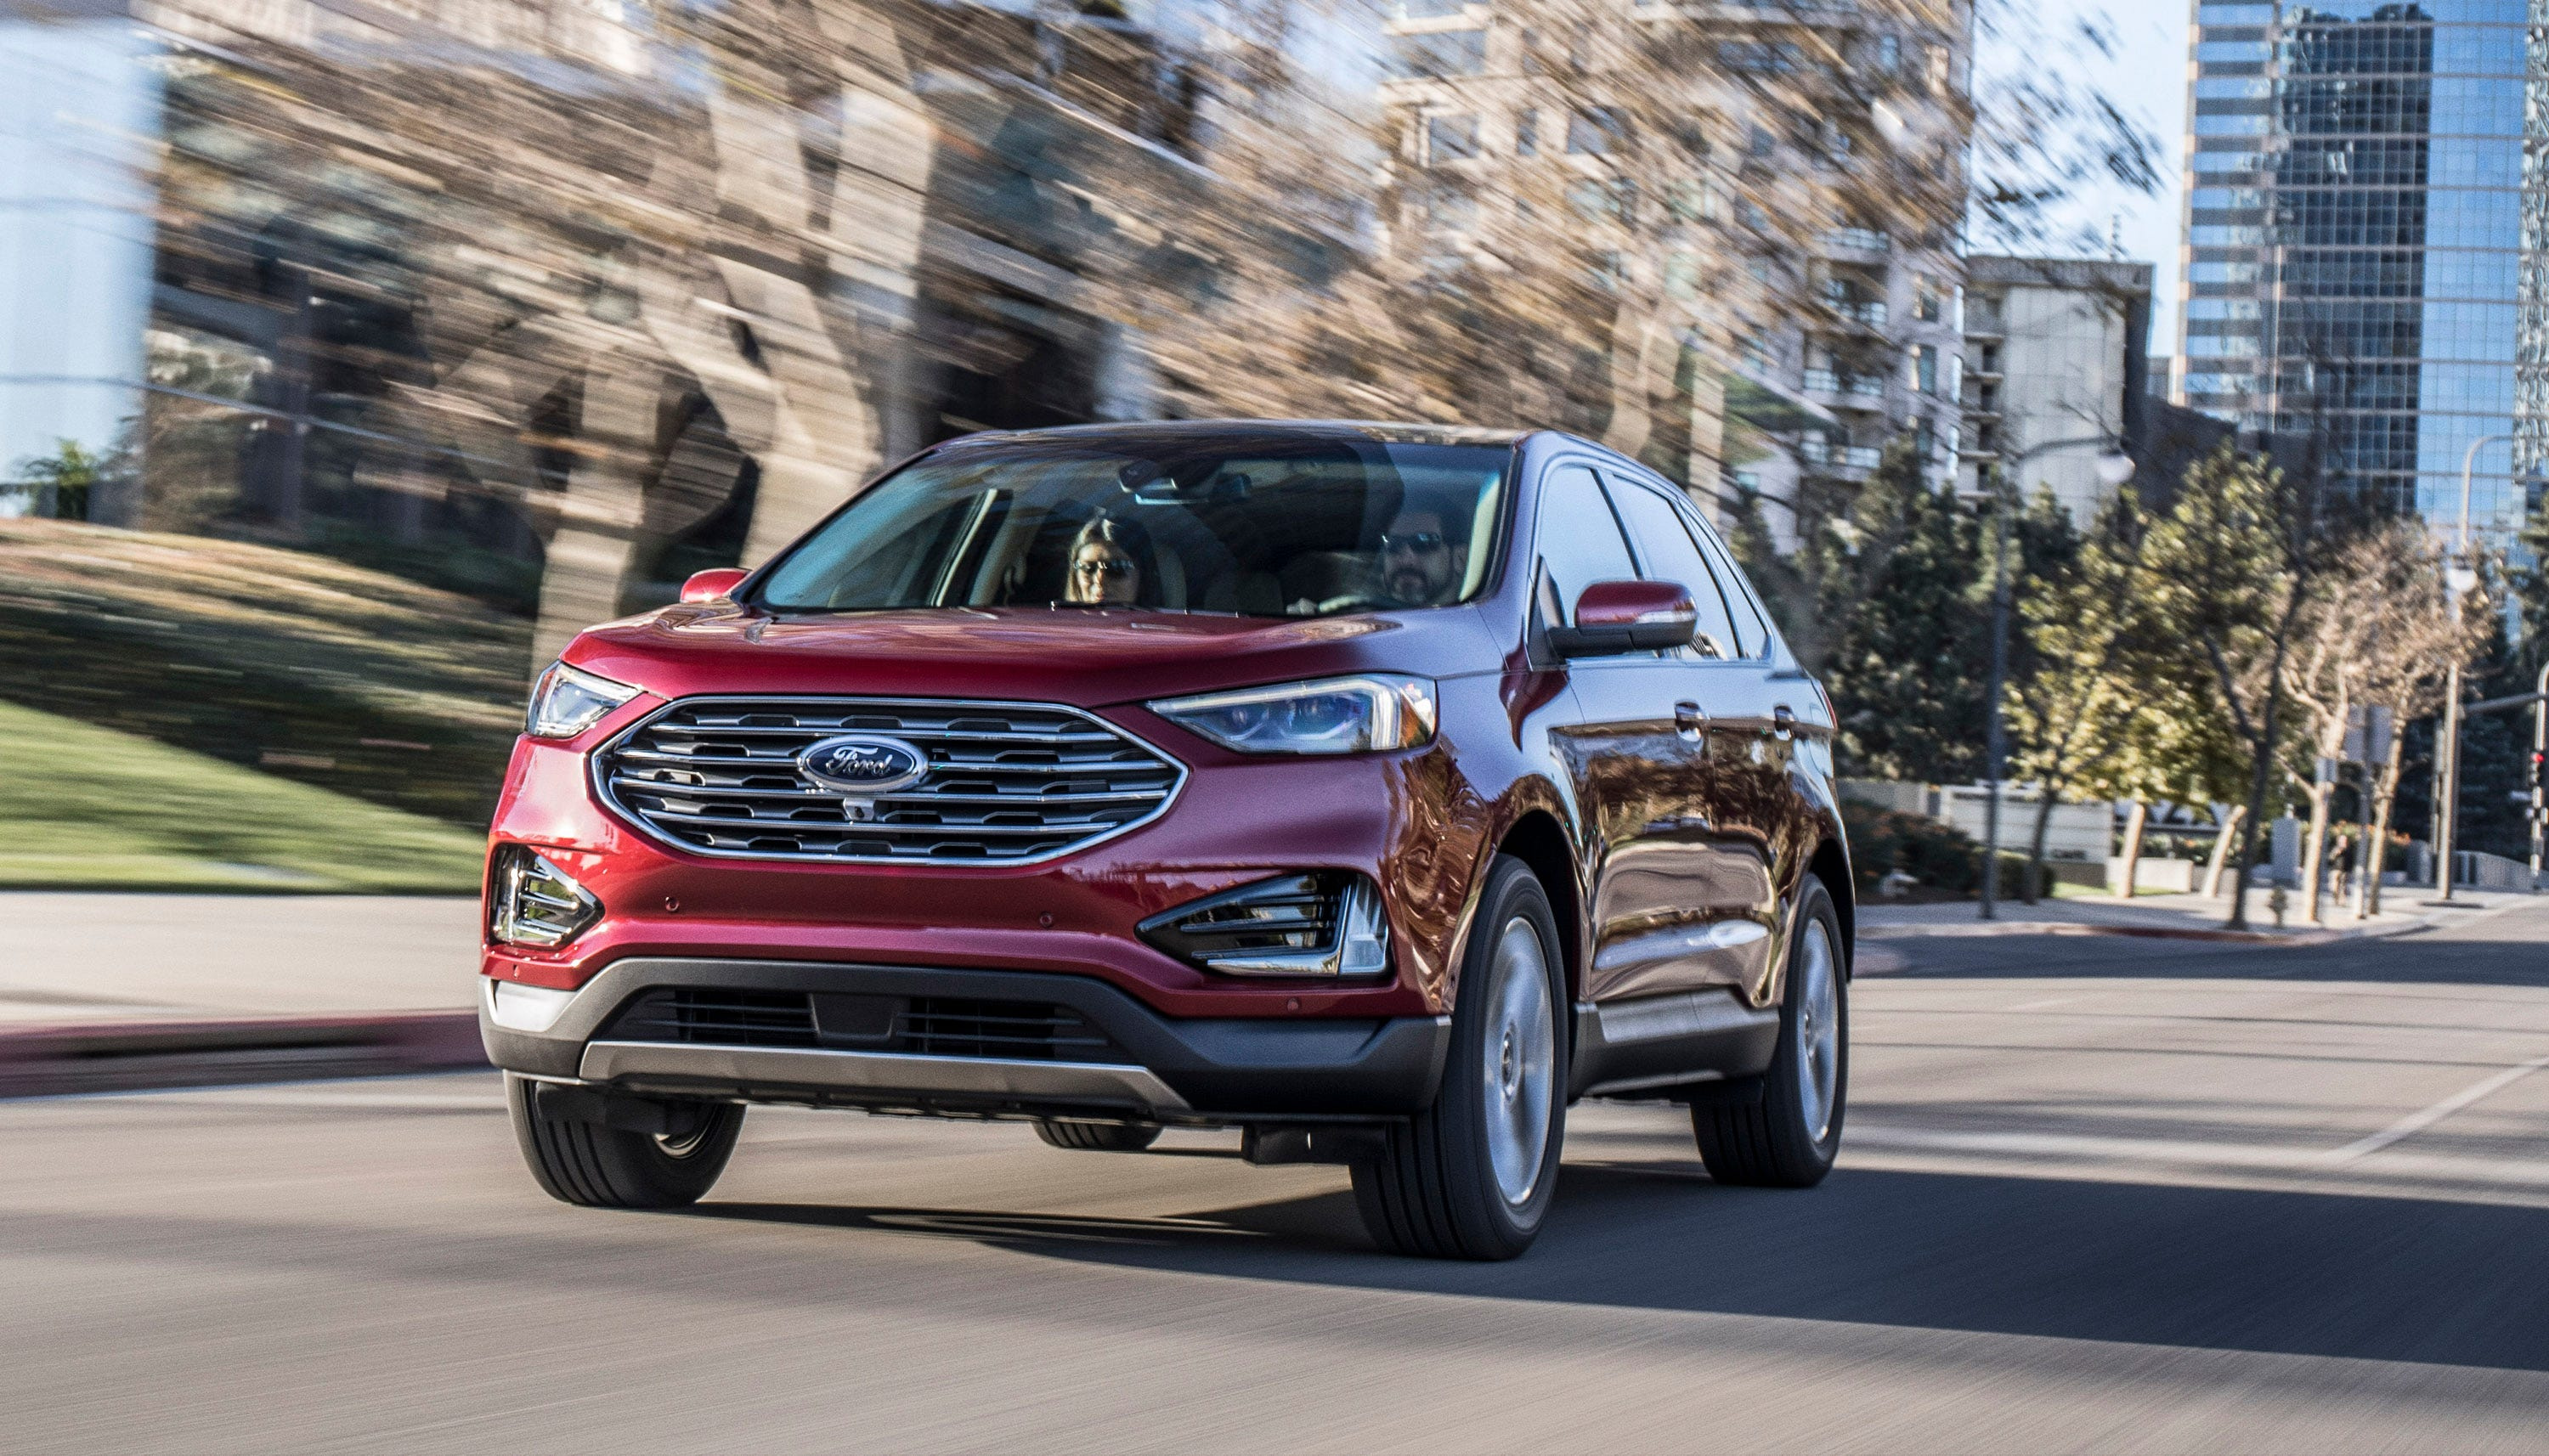 2018 detroit auto show 2019 ford edge revealed. Black Bedroom Furniture Sets. Home Design Ideas